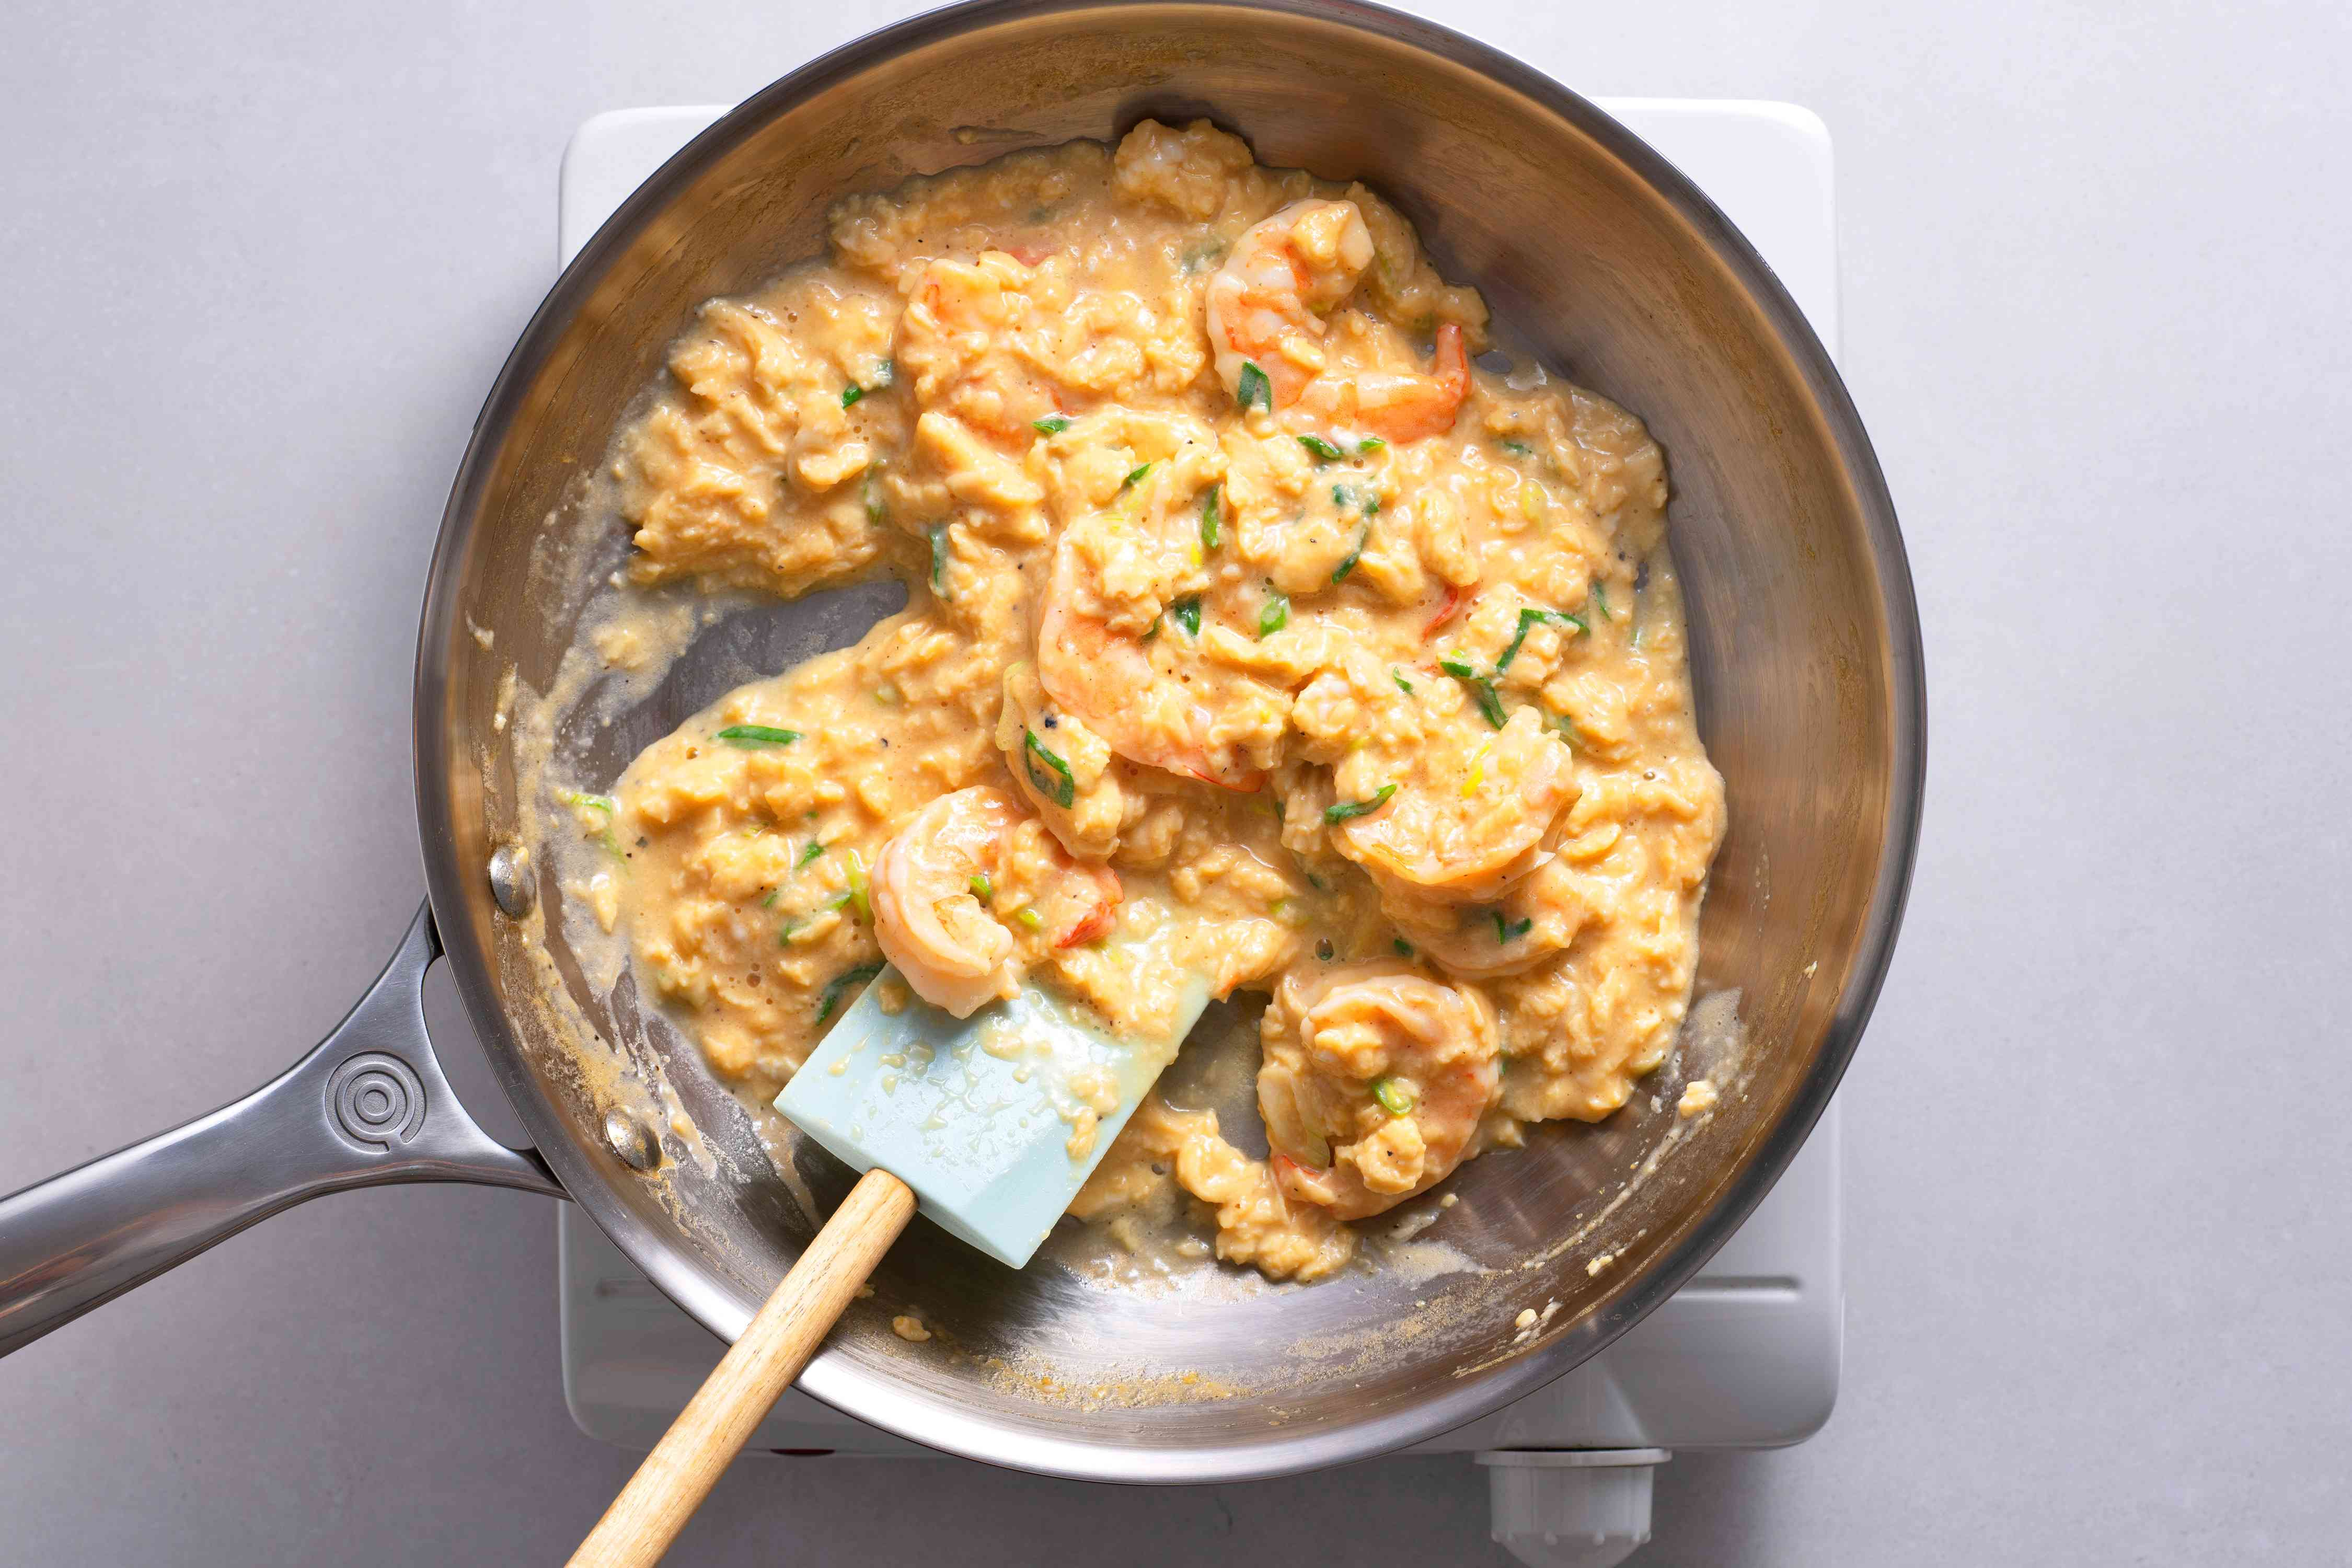 Scrambled eggs with shrimp in a pan